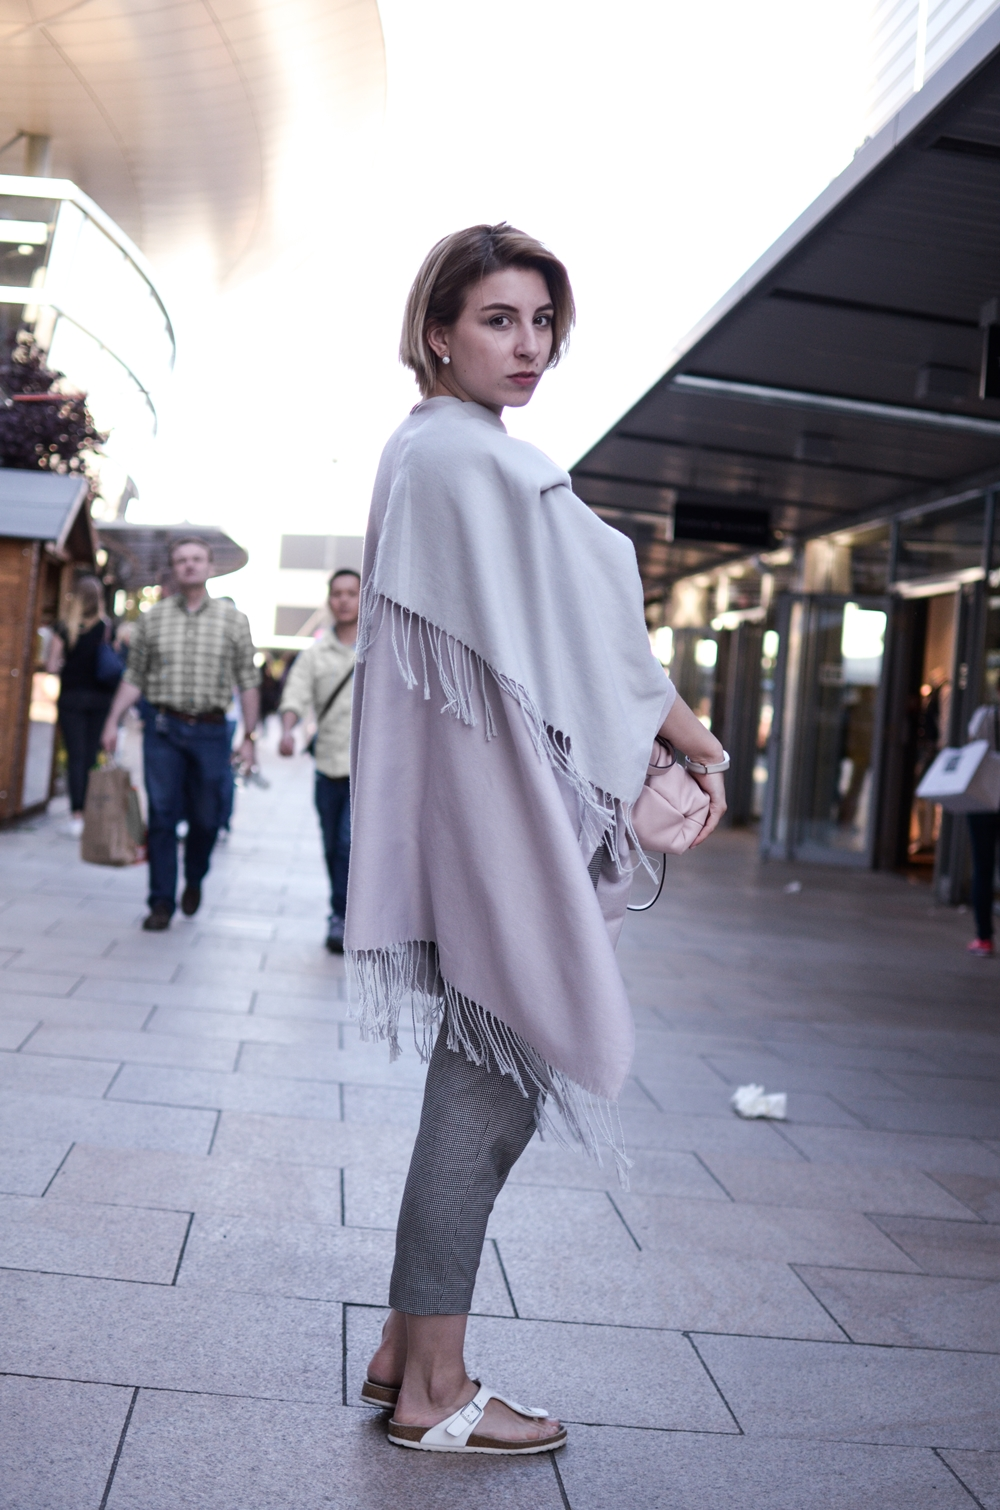 outlet-wolfsburg-outfit-cape-1